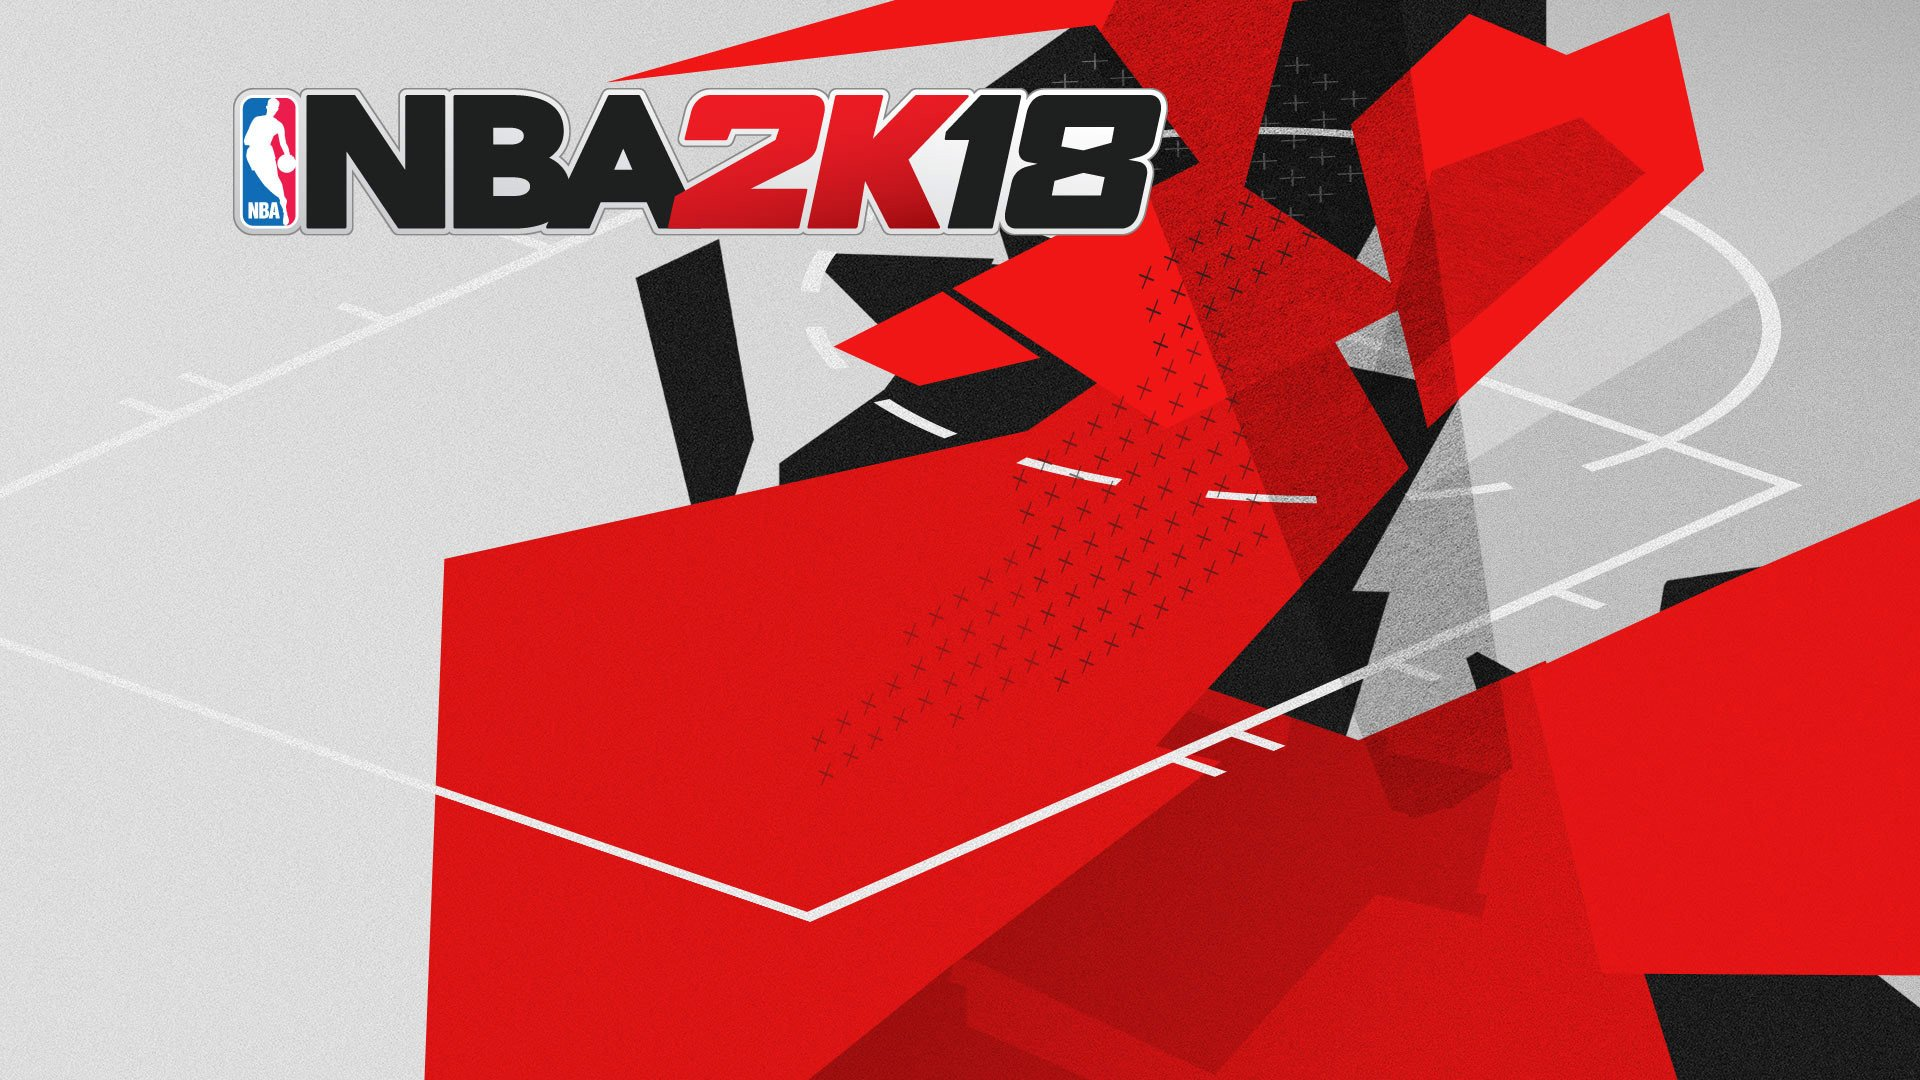 Nba 2k18 Cover Template Ready to Play Nba 2k18 Try It Out In September – Gaming